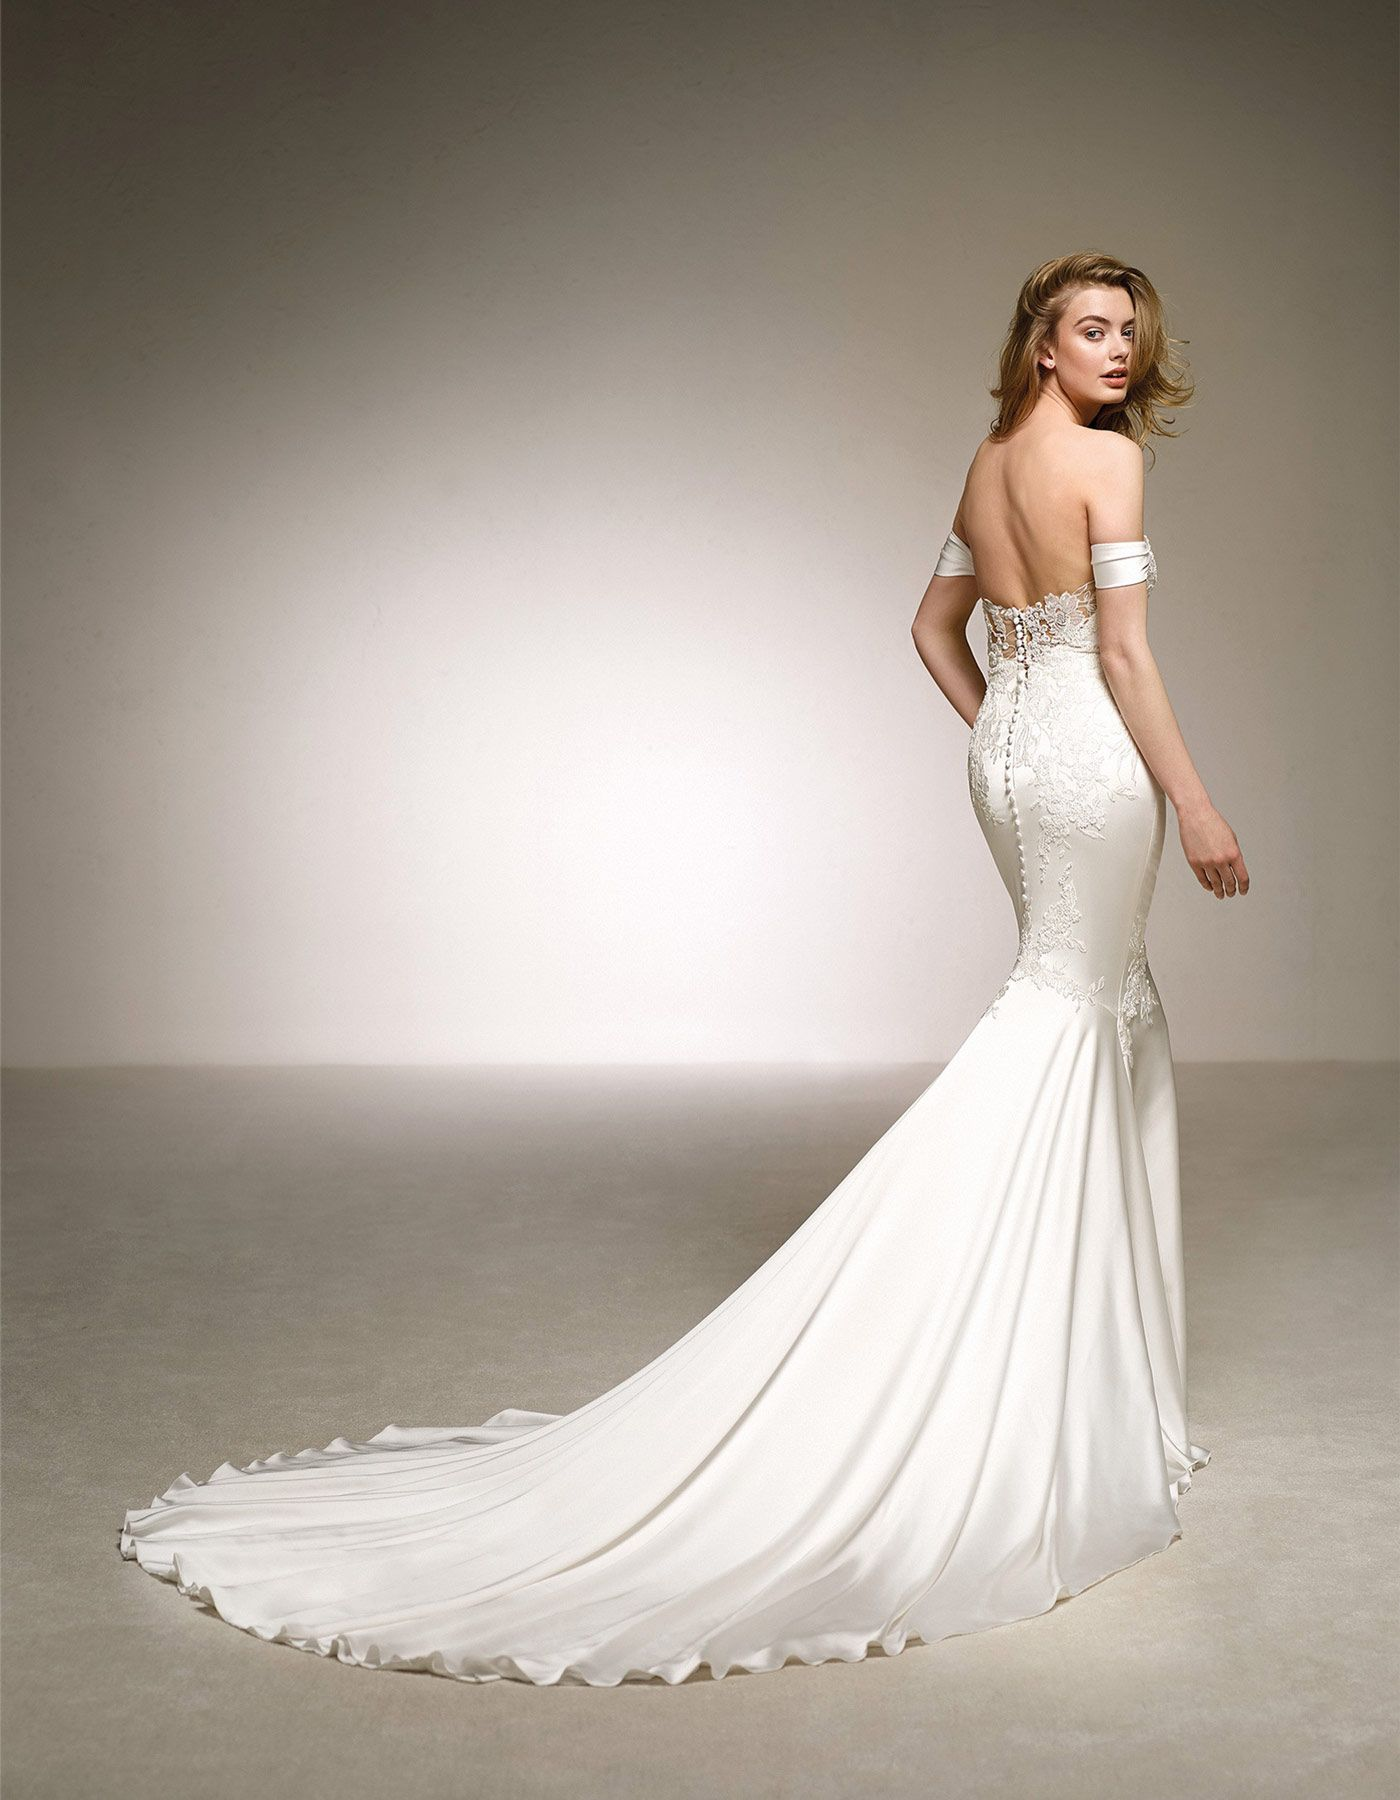 7a57432f6a49 Dante by Pronovias The silk satin glows with its own light in this  spectacular romantic design. A low waist wedding dress with a mermaid  skirt